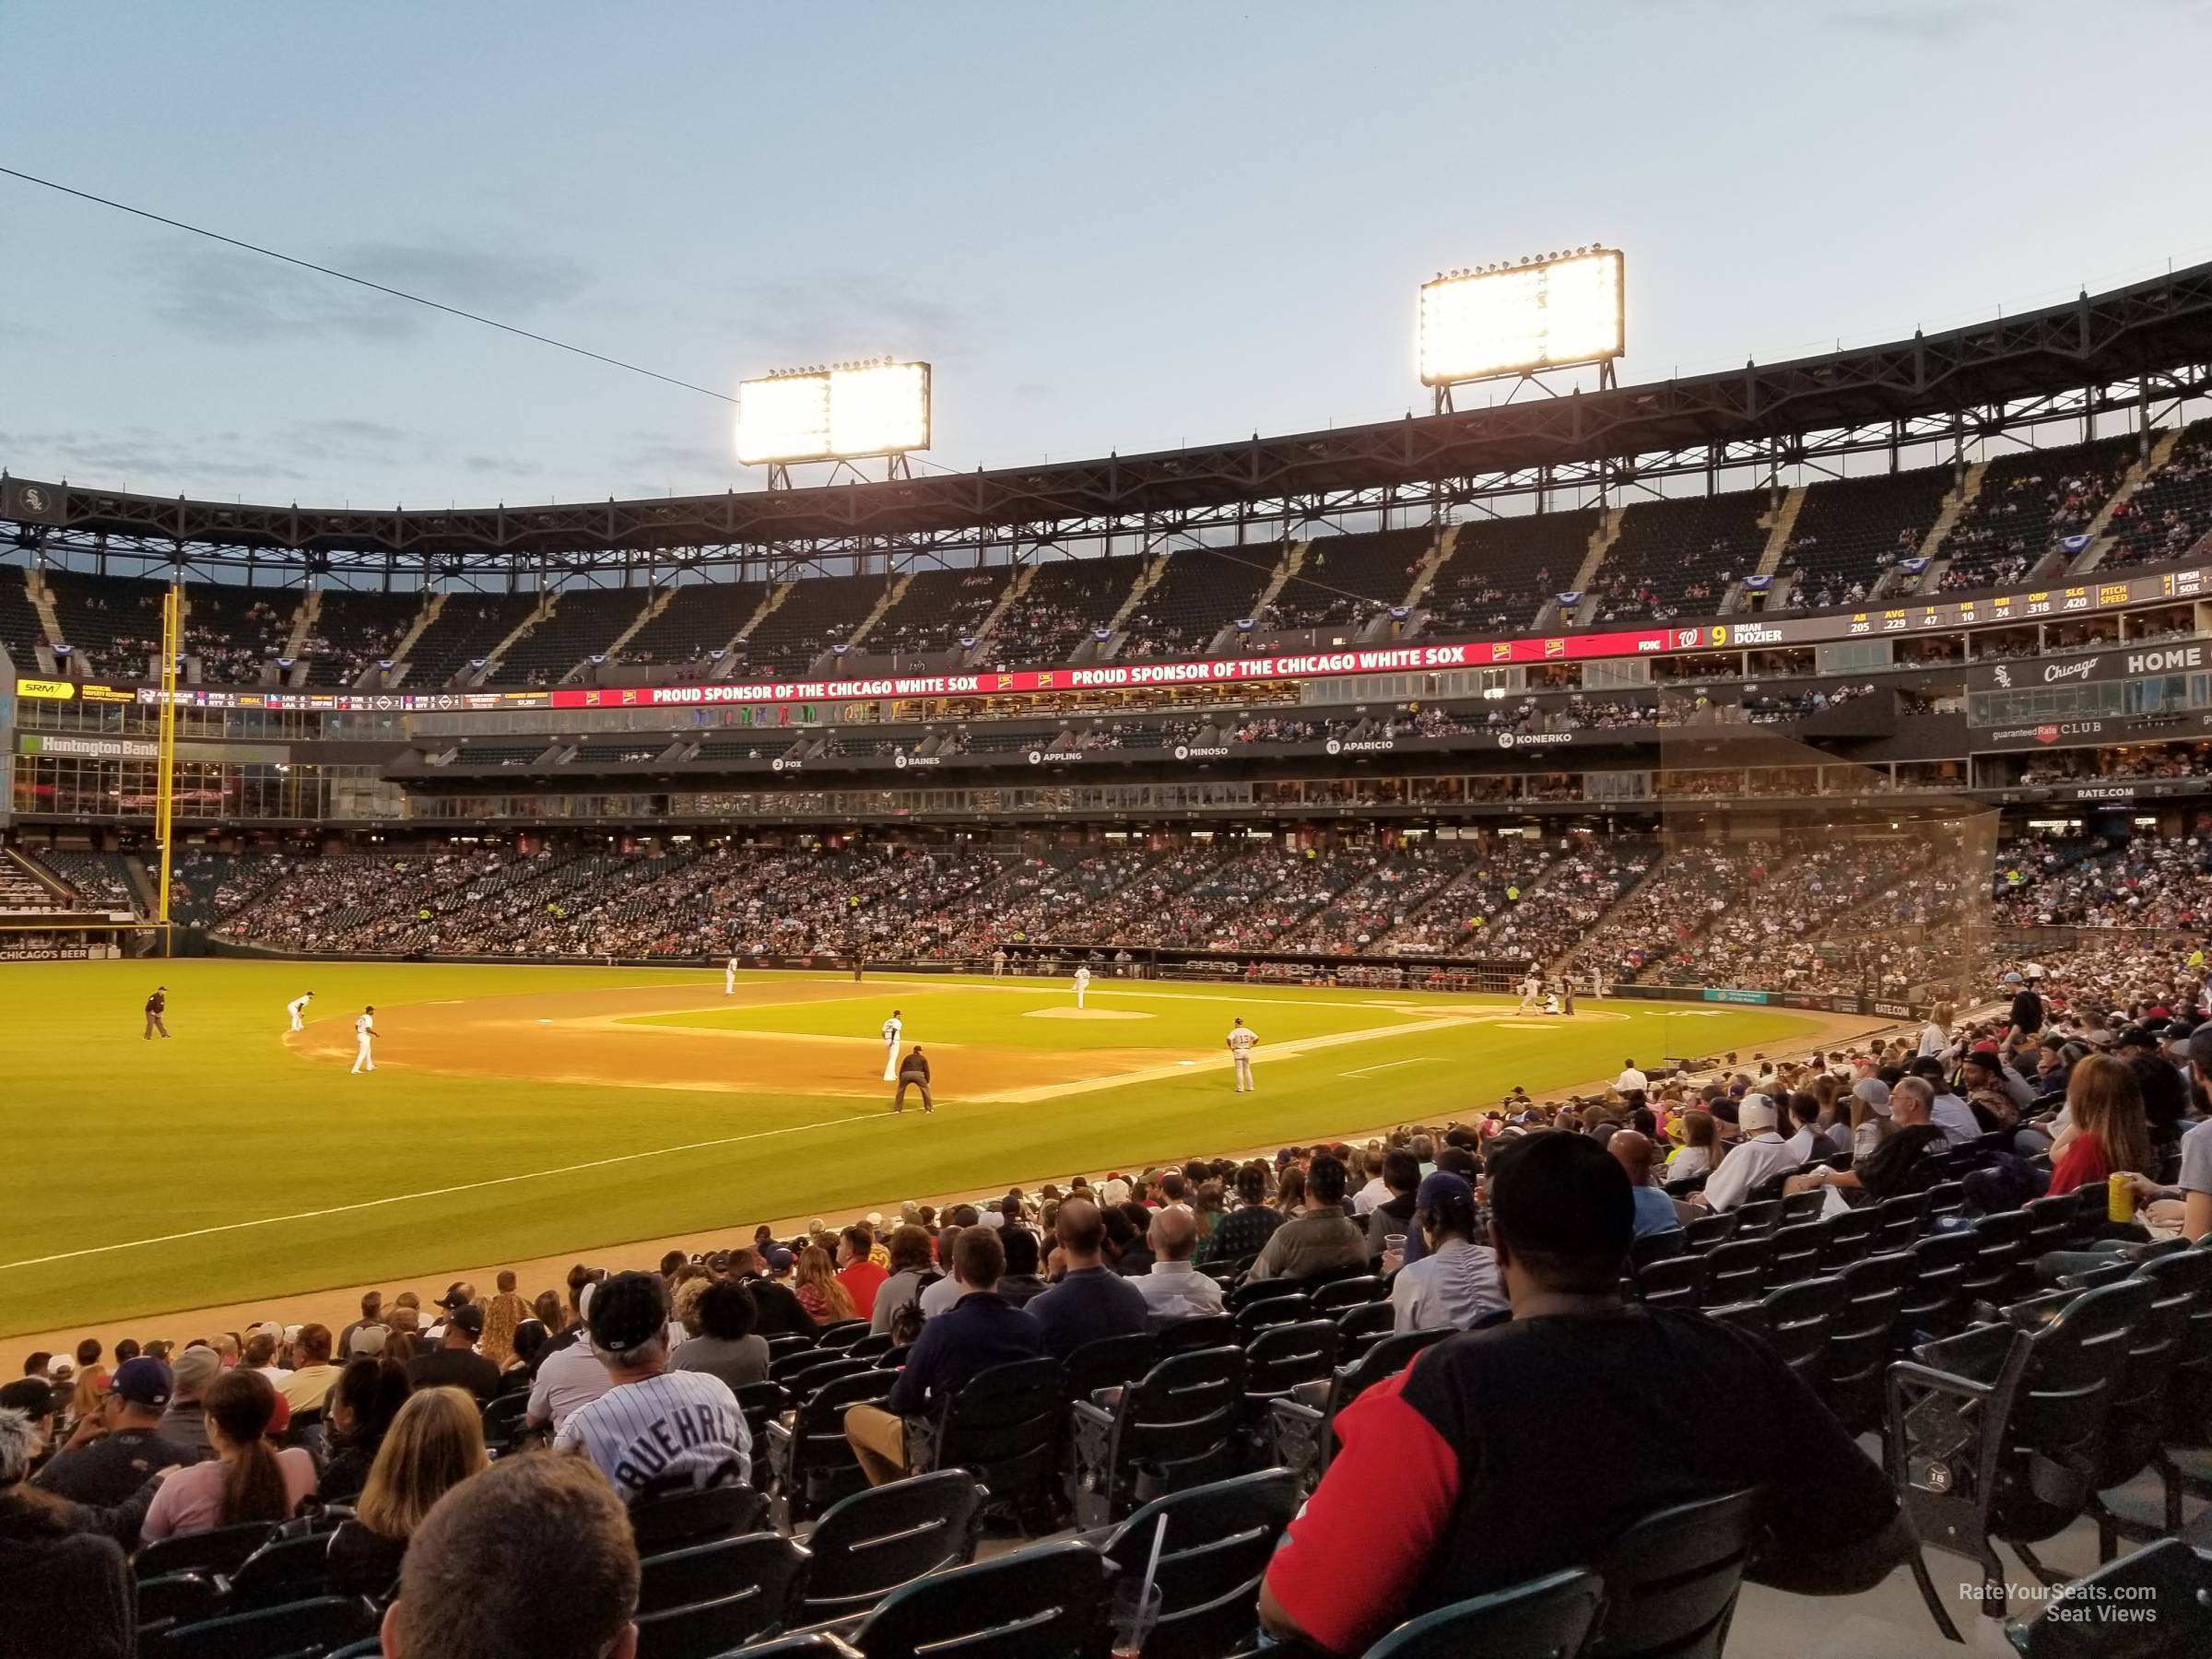 Section 148 seat view